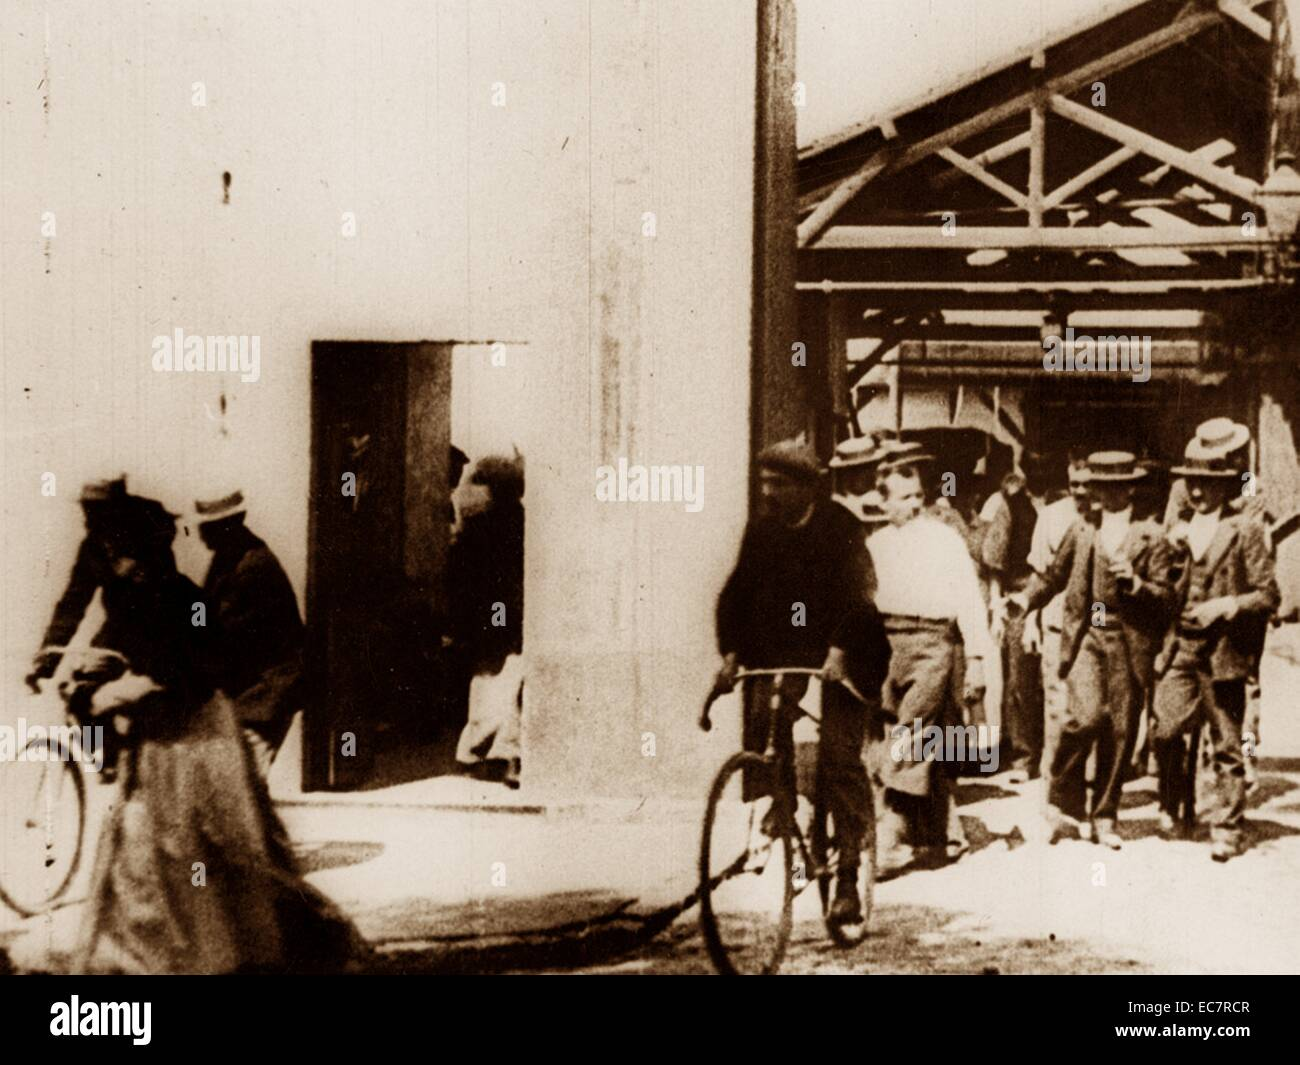 Workers leaving the Lumière factory in Lyon - Stock Image